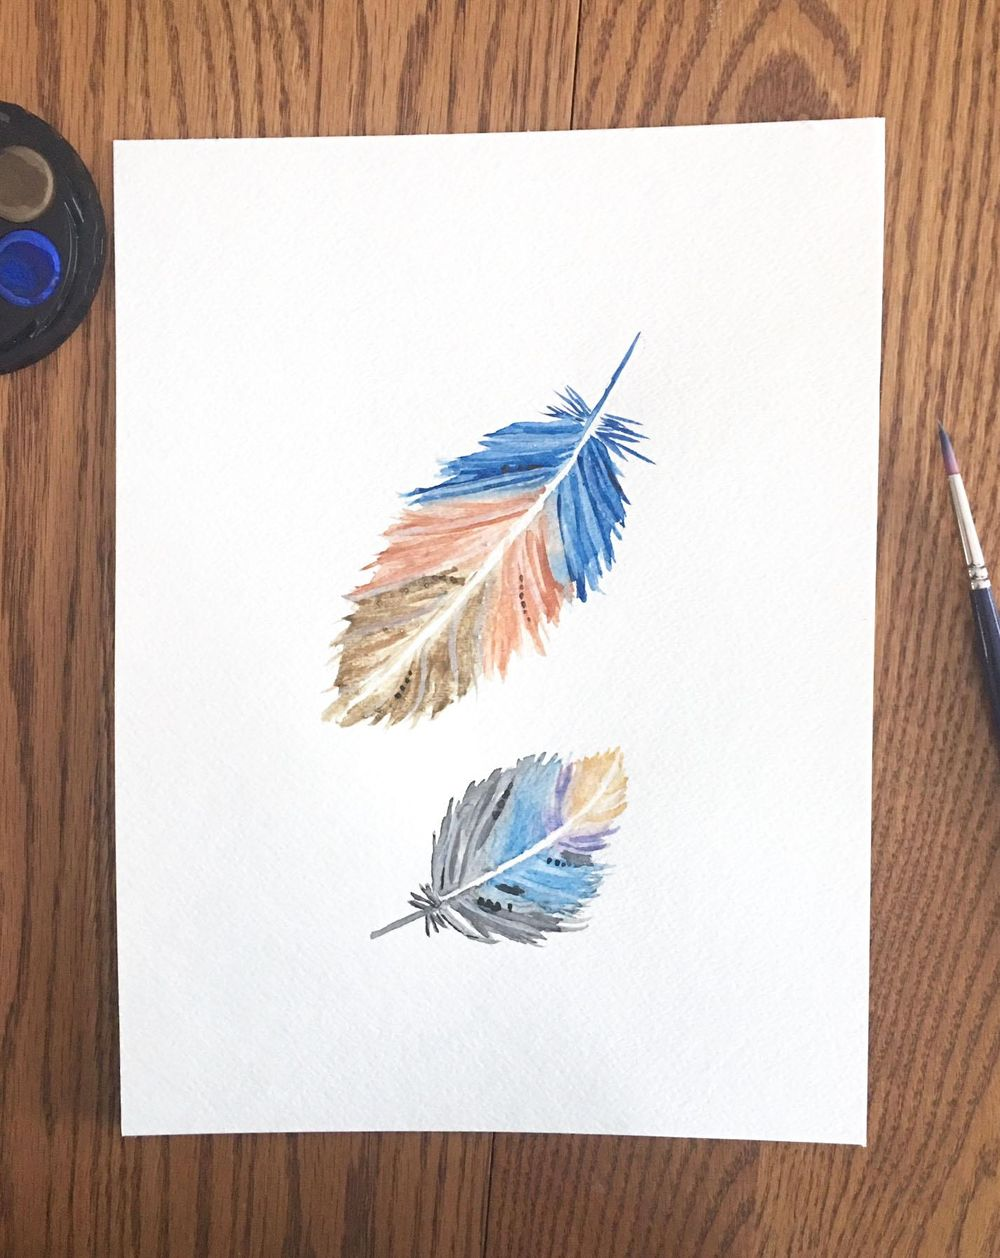 Watercolour Feathers Try 1! - image 3 - student project